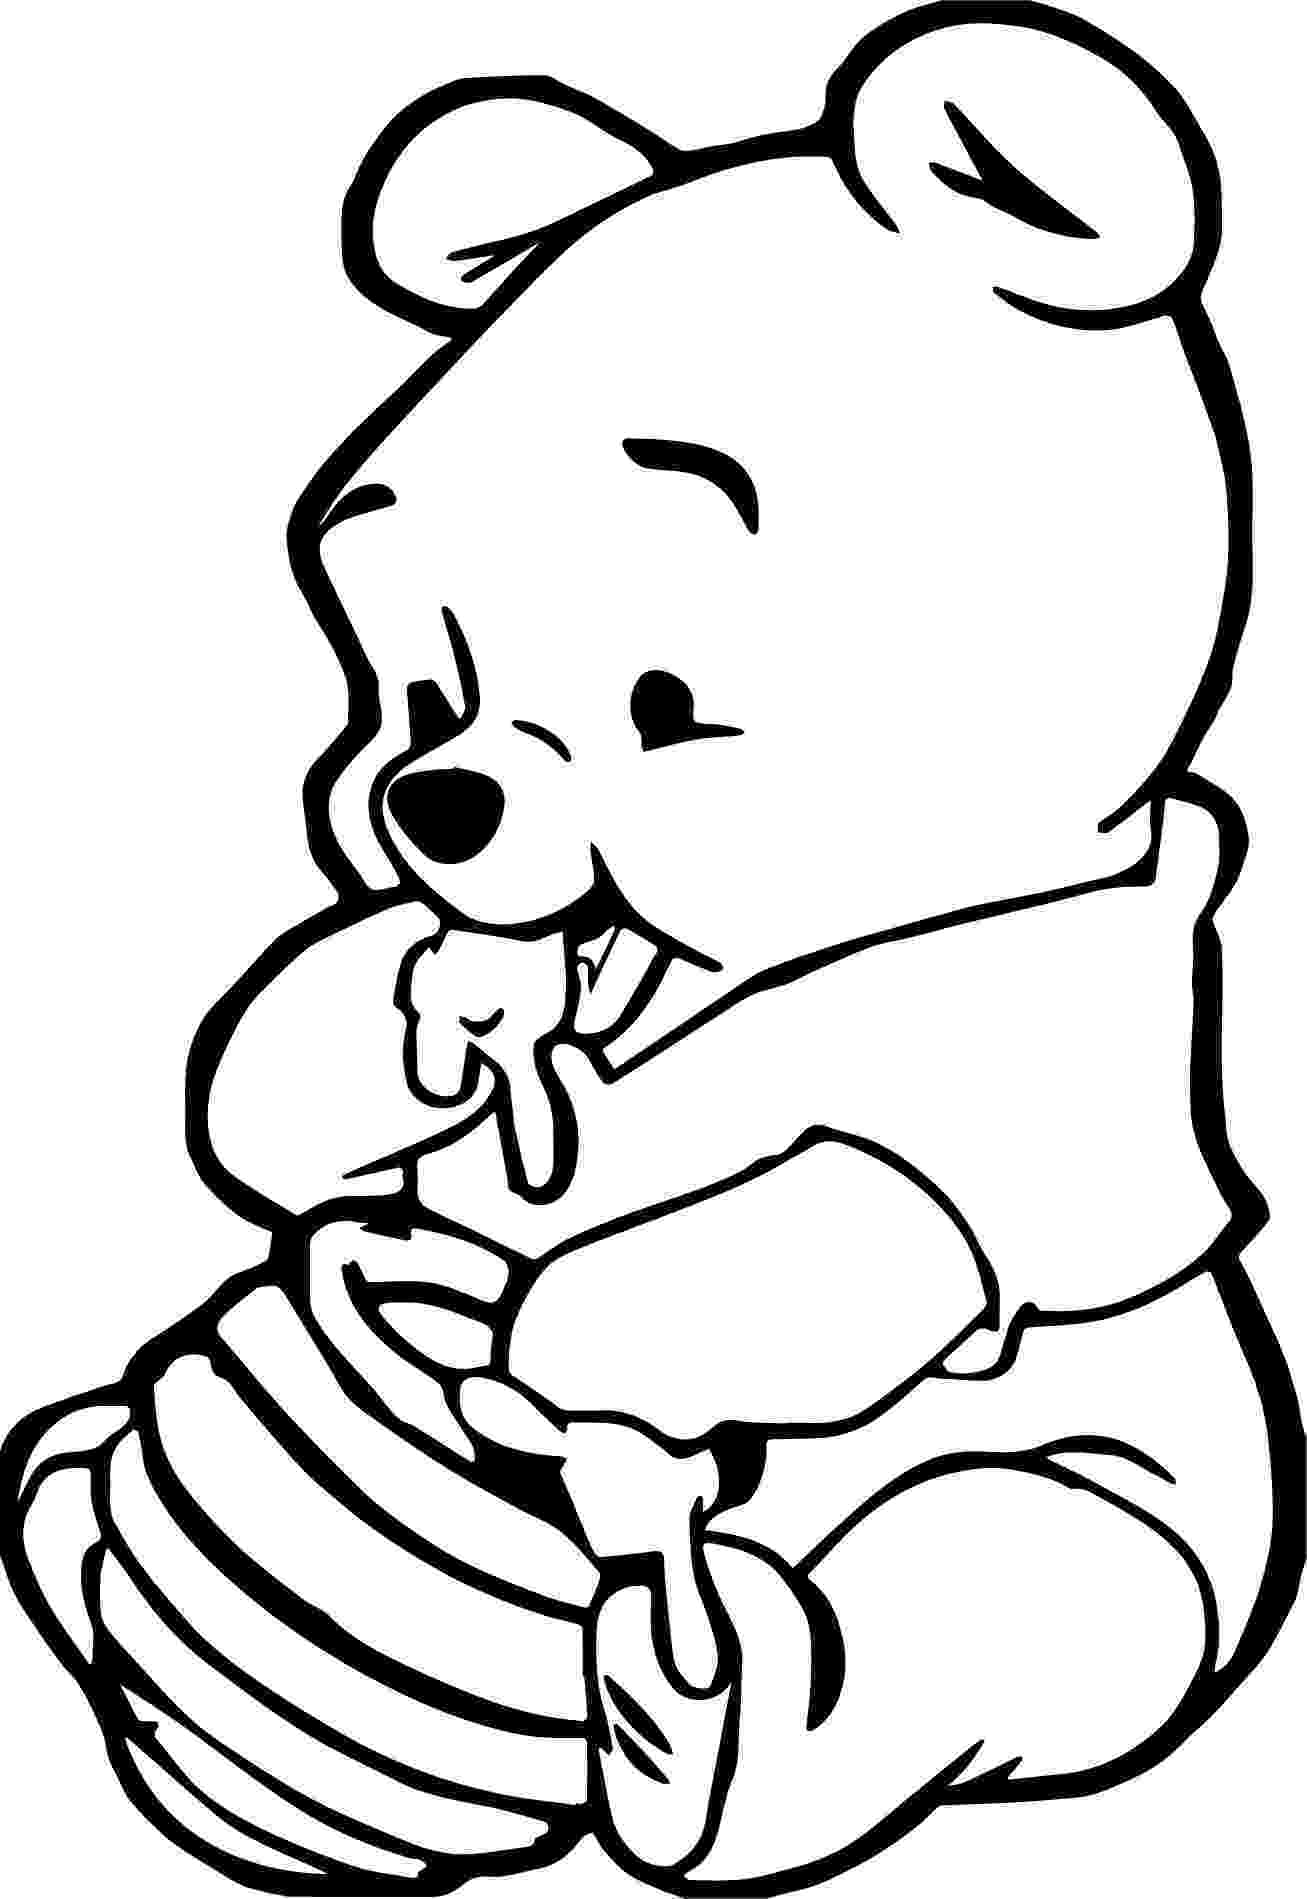 baby animal coloring page baby animal coloring pages getcoloringpagescom animal baby coloring page 1 1